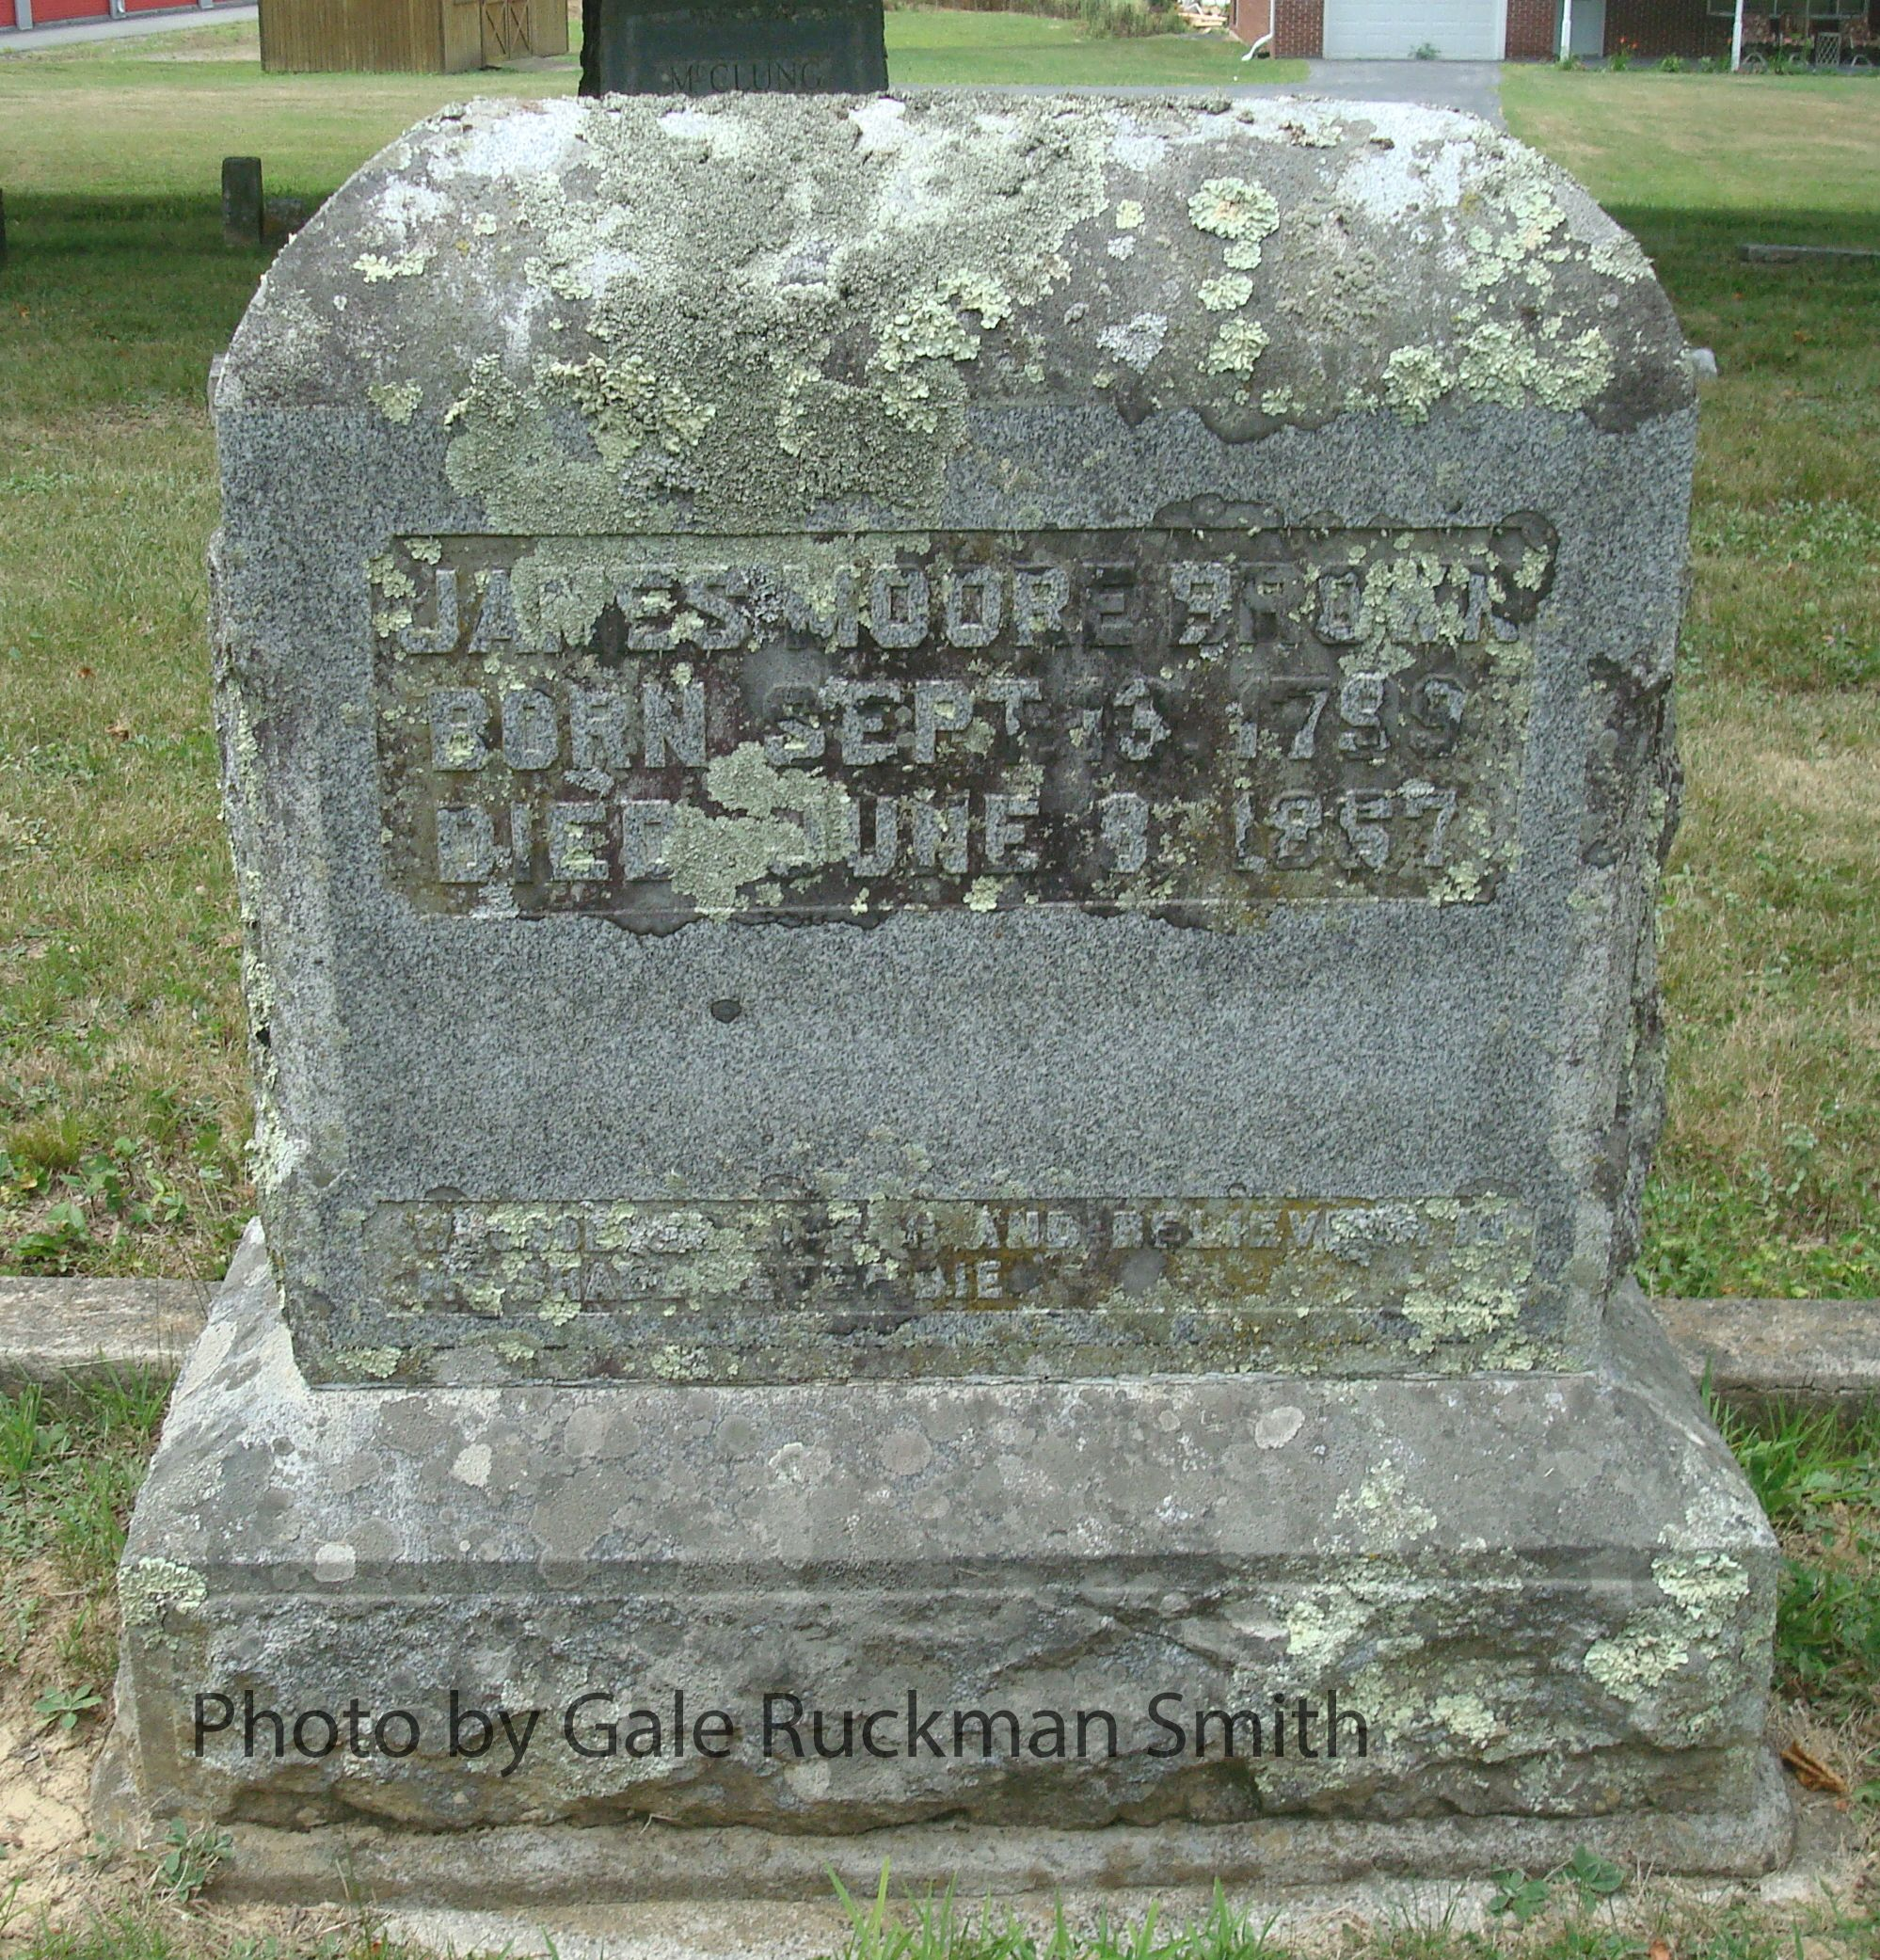 James Moore Brown is buried at Frankford Cemetery, Frankford, West Virginia.